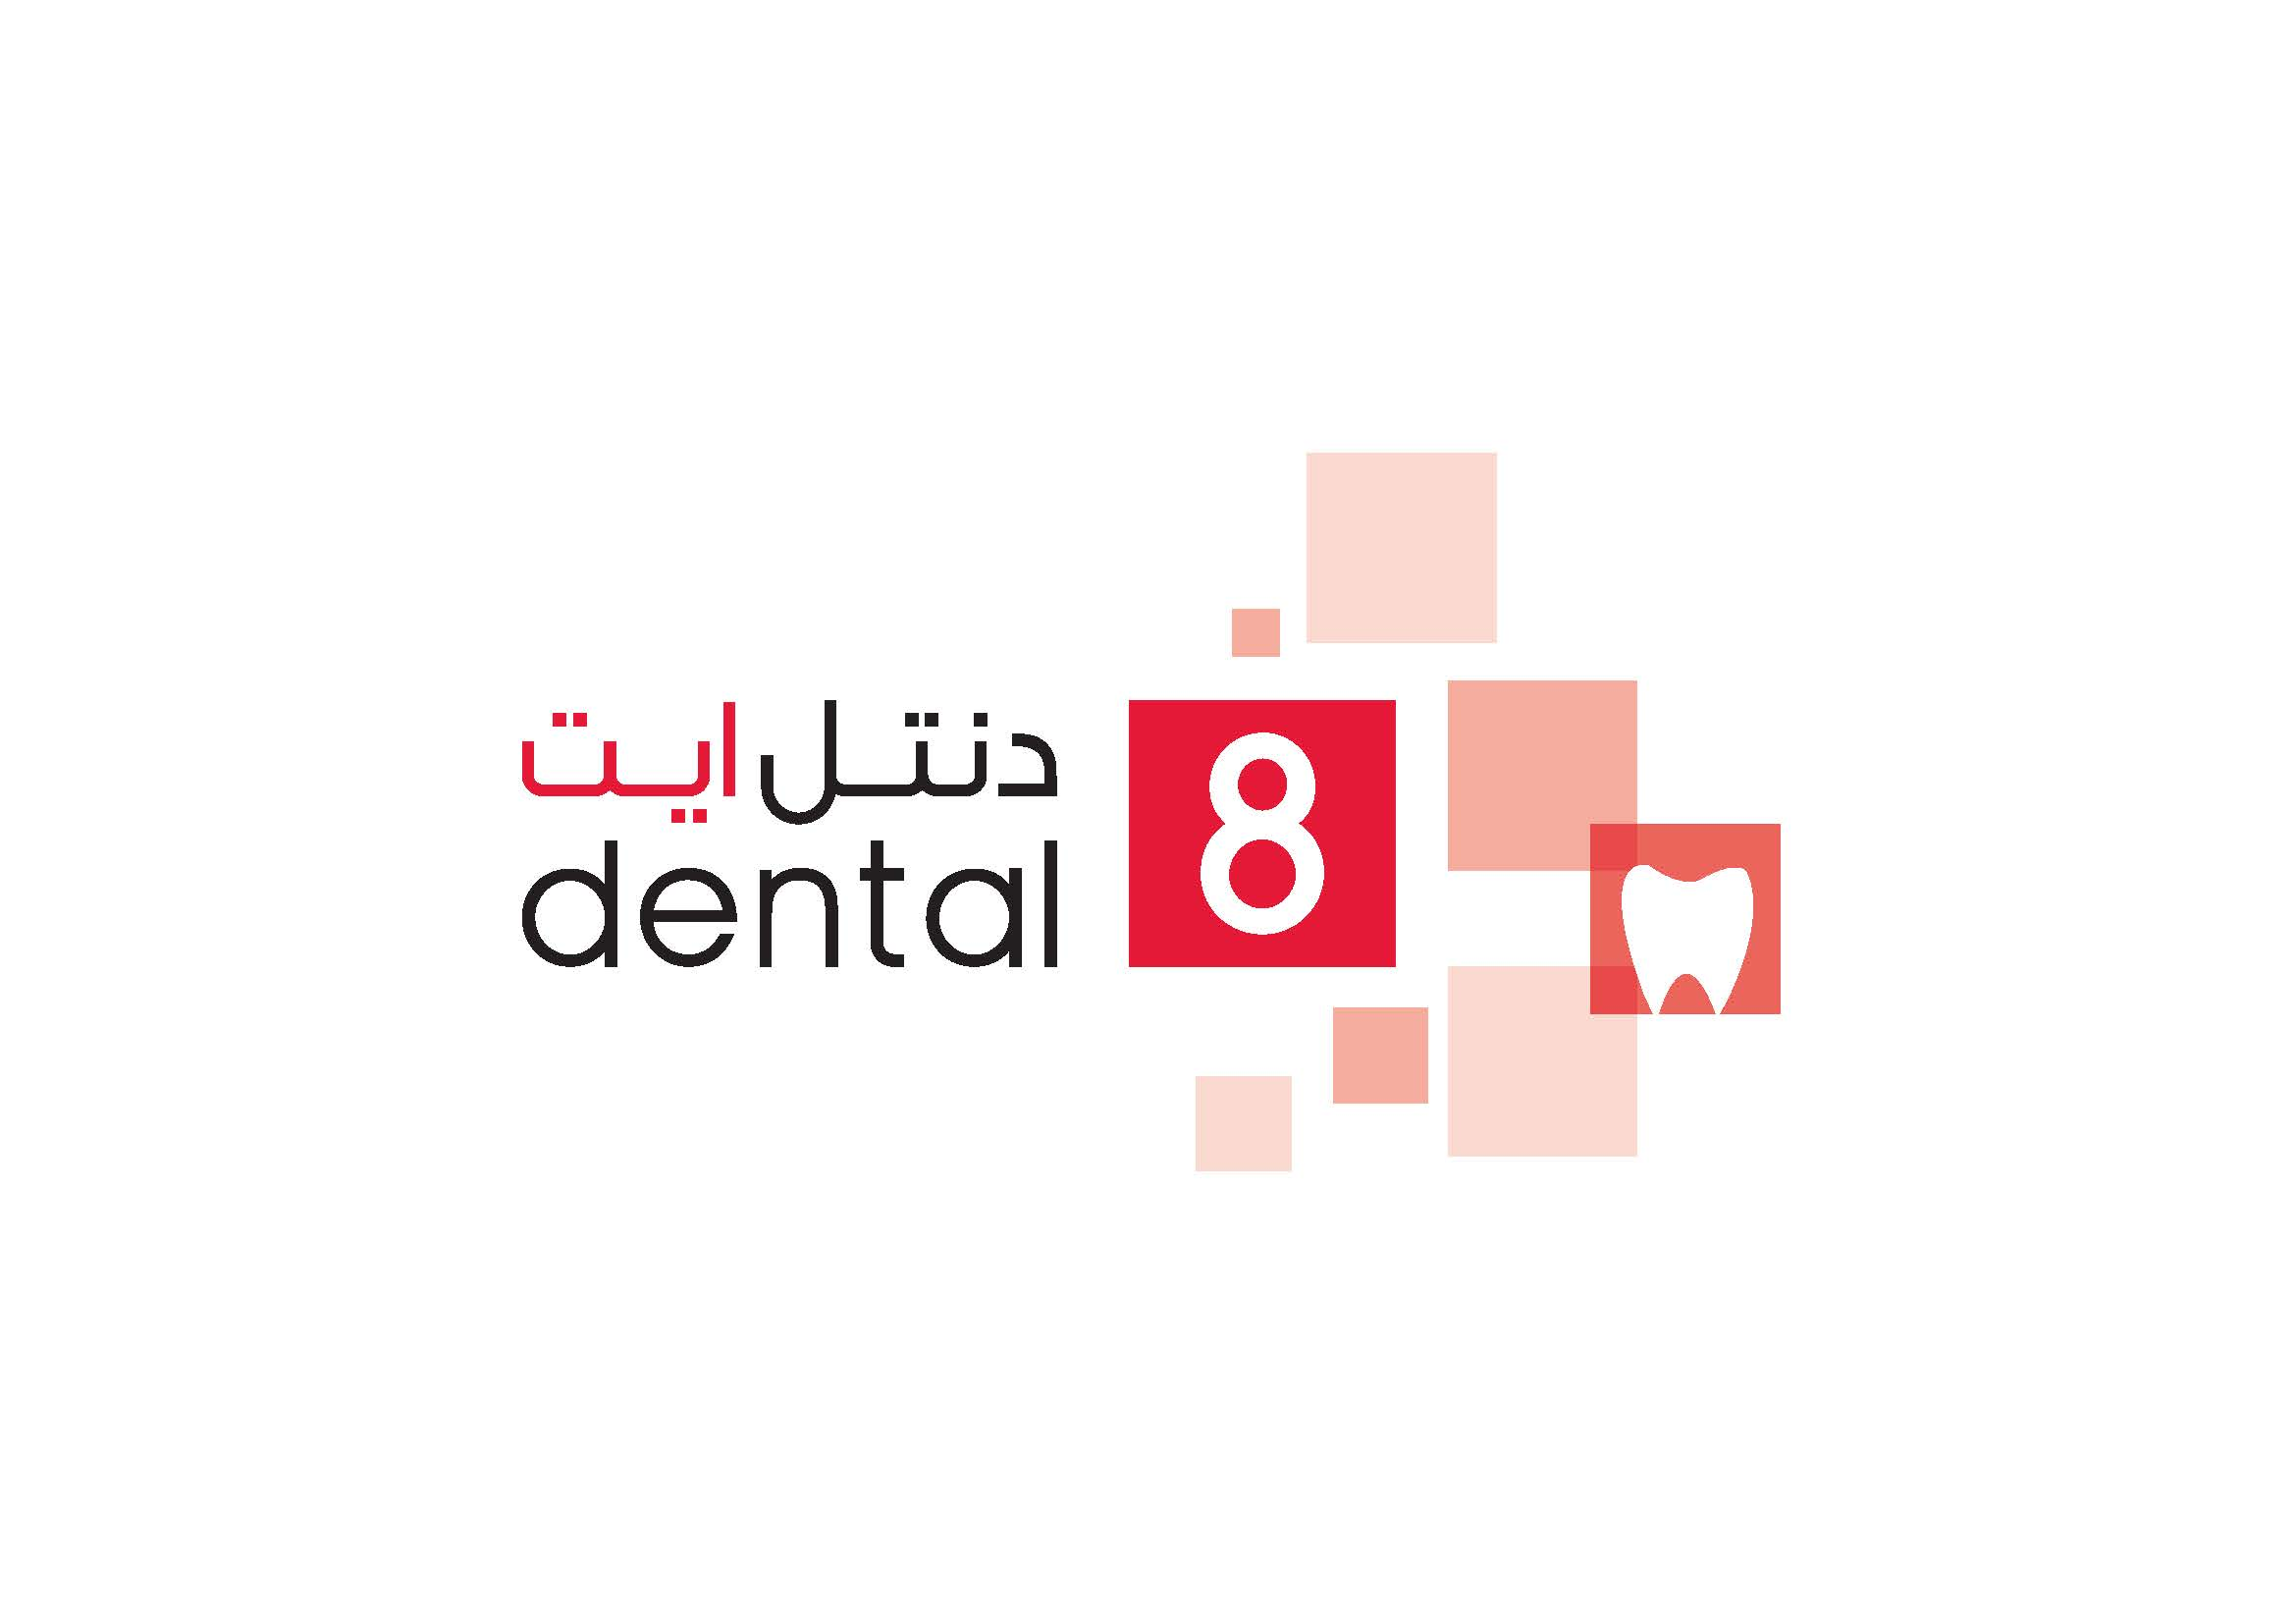 Dental 8 Clinic (Network)